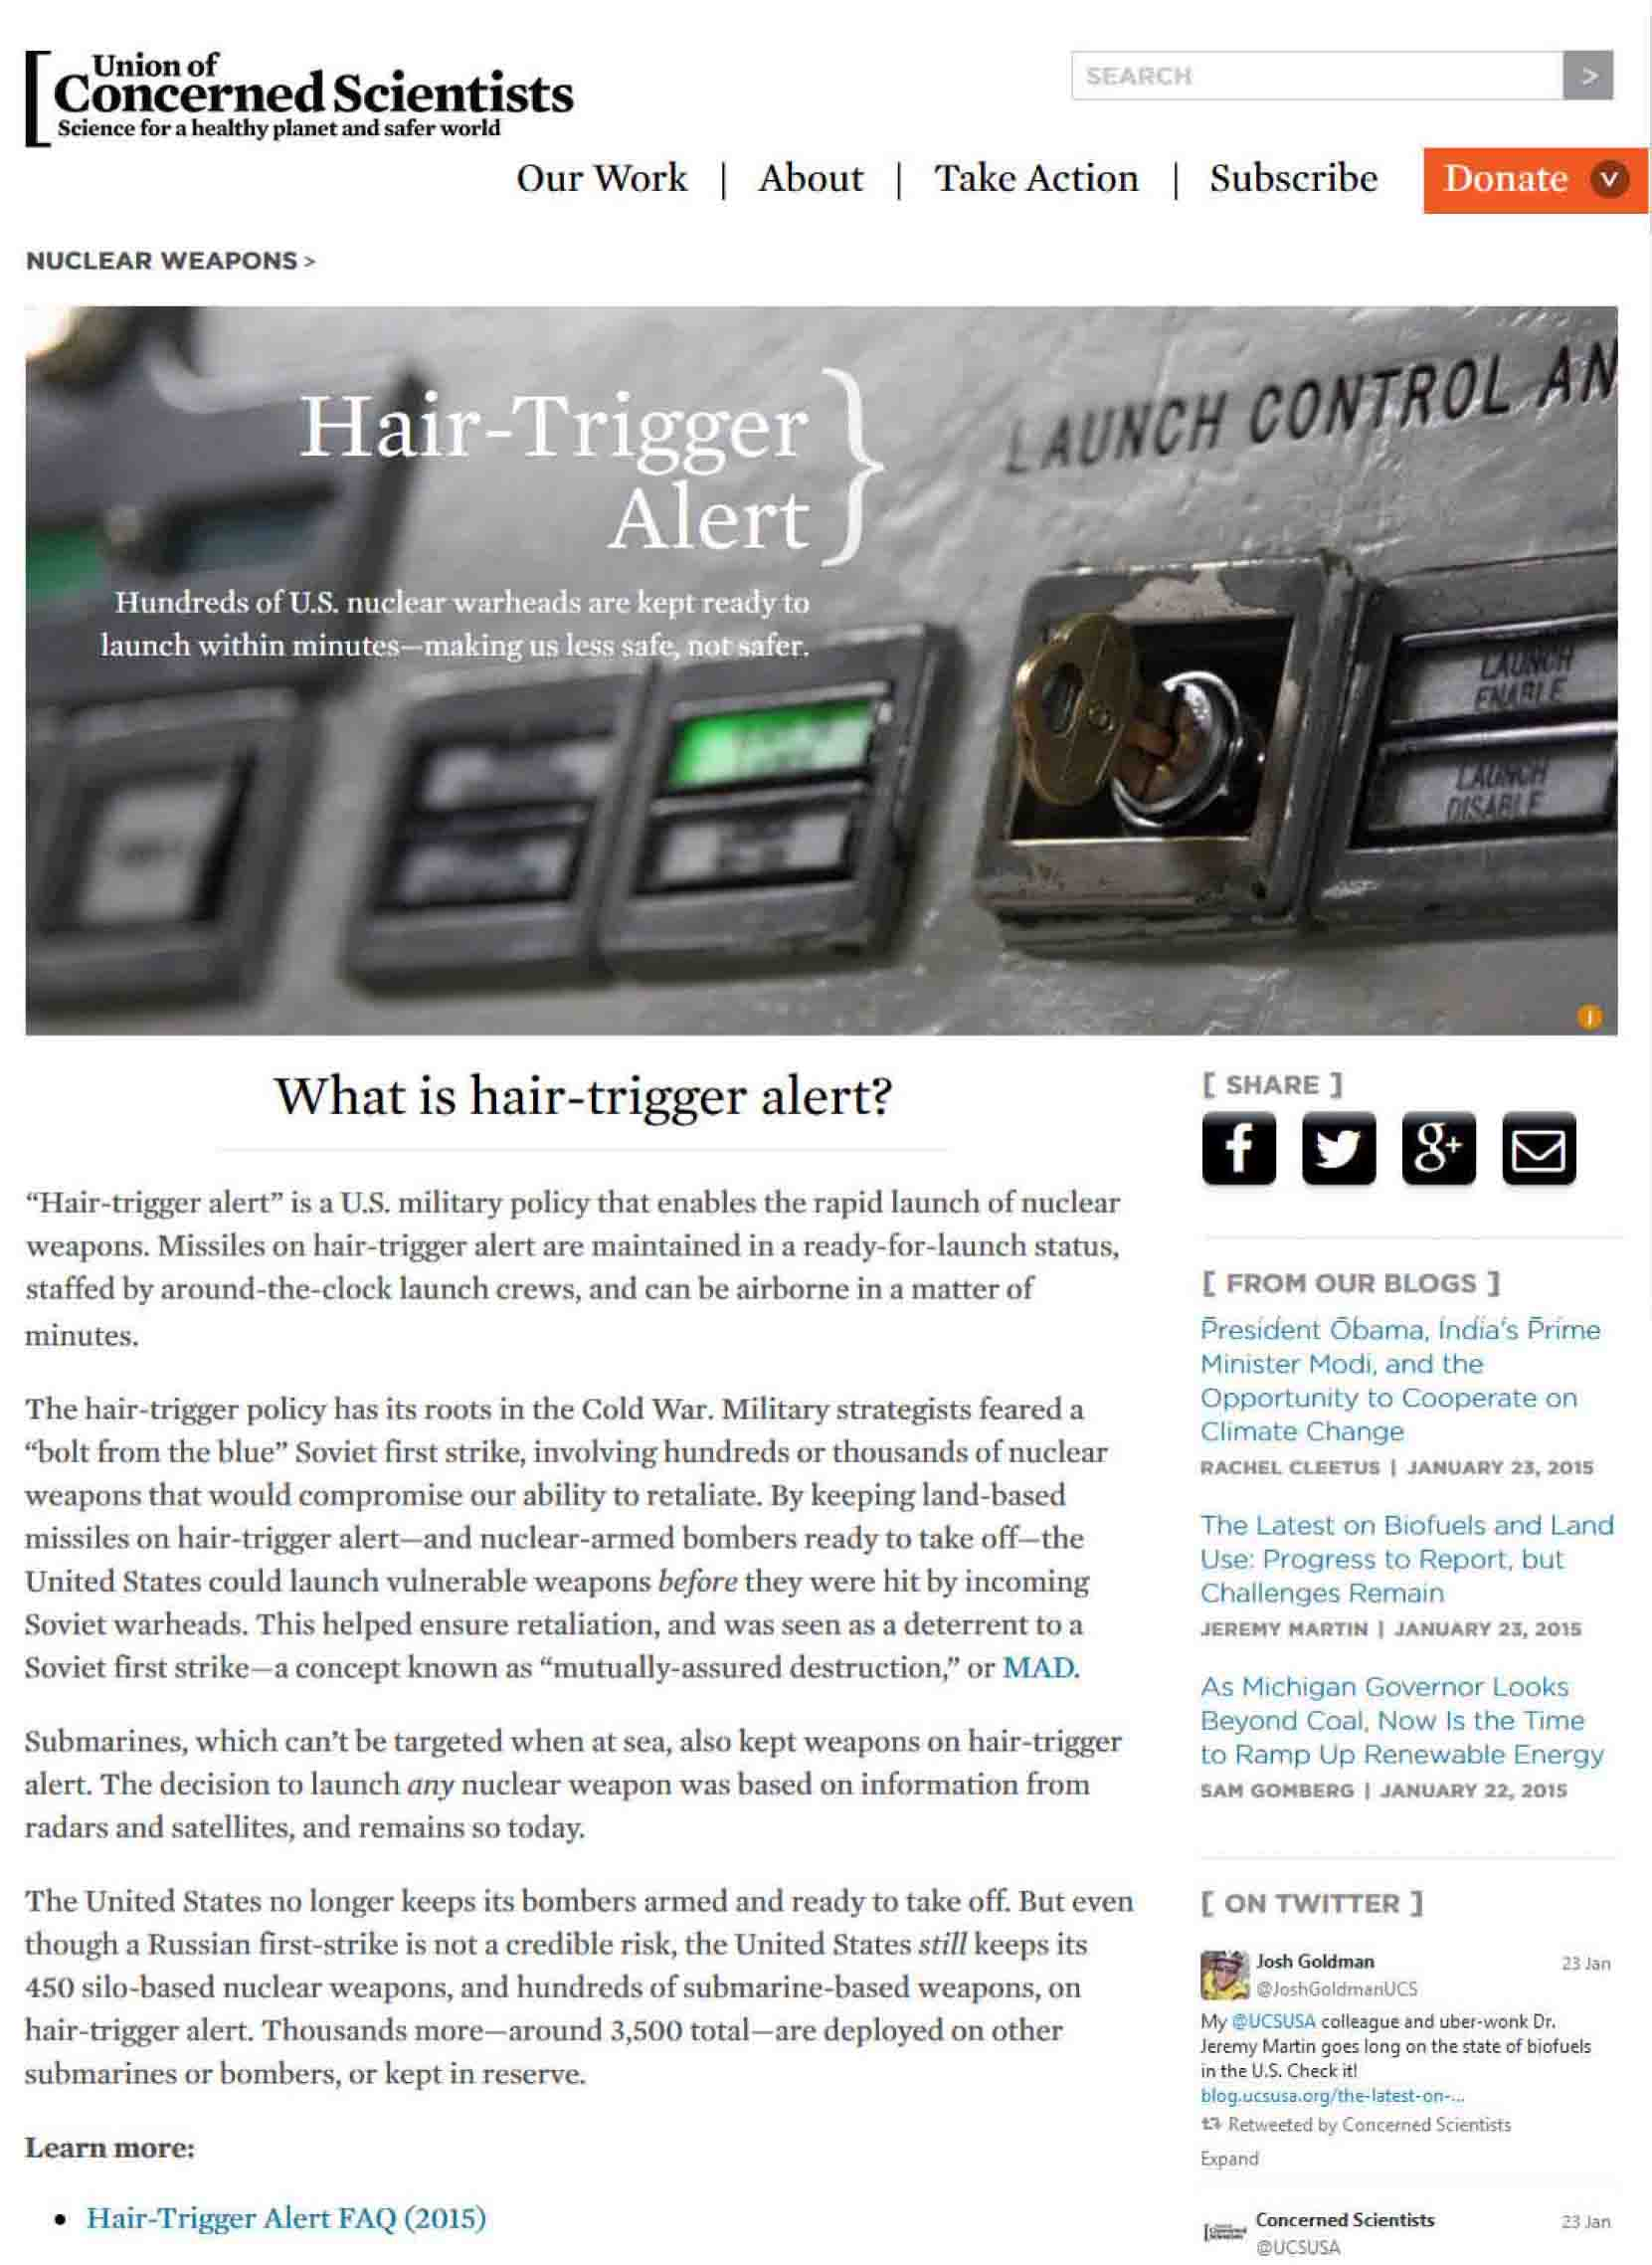 UCS web page for three 2015 factsheets I edited on nuclear weapons on hair-trigger alert